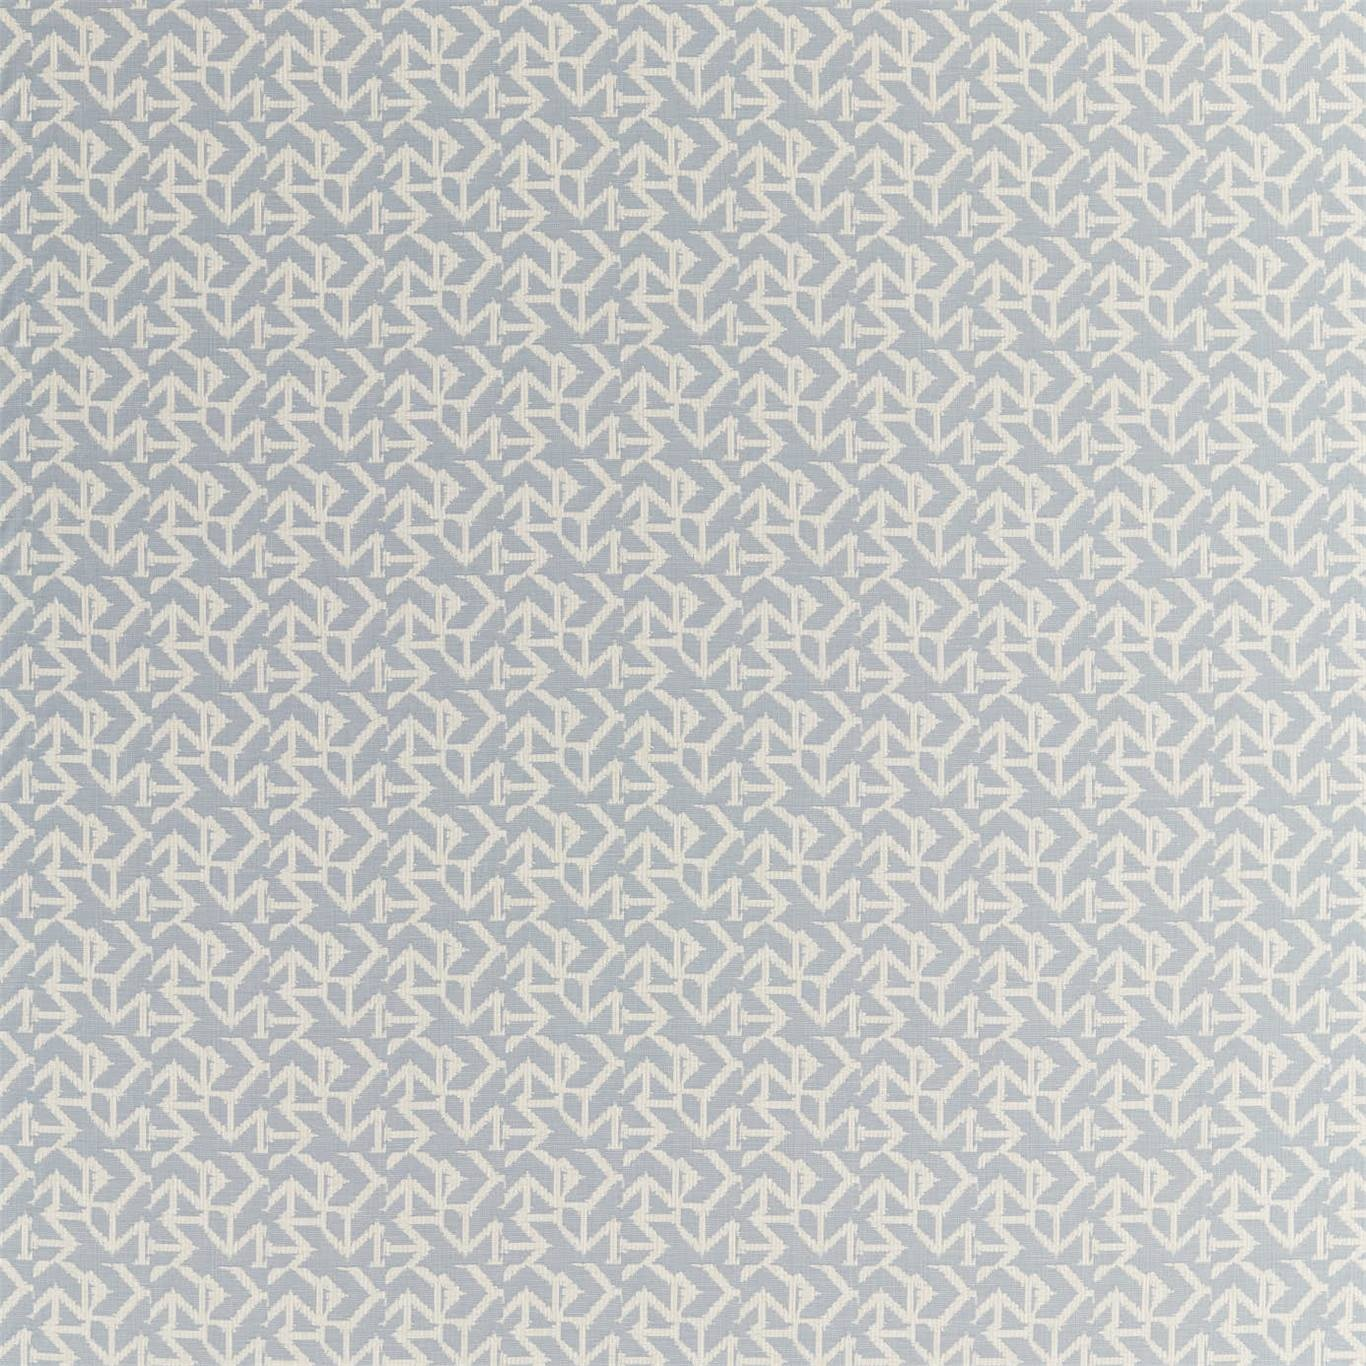 Image of Harlequin Moremi Harbour Fabric 133075